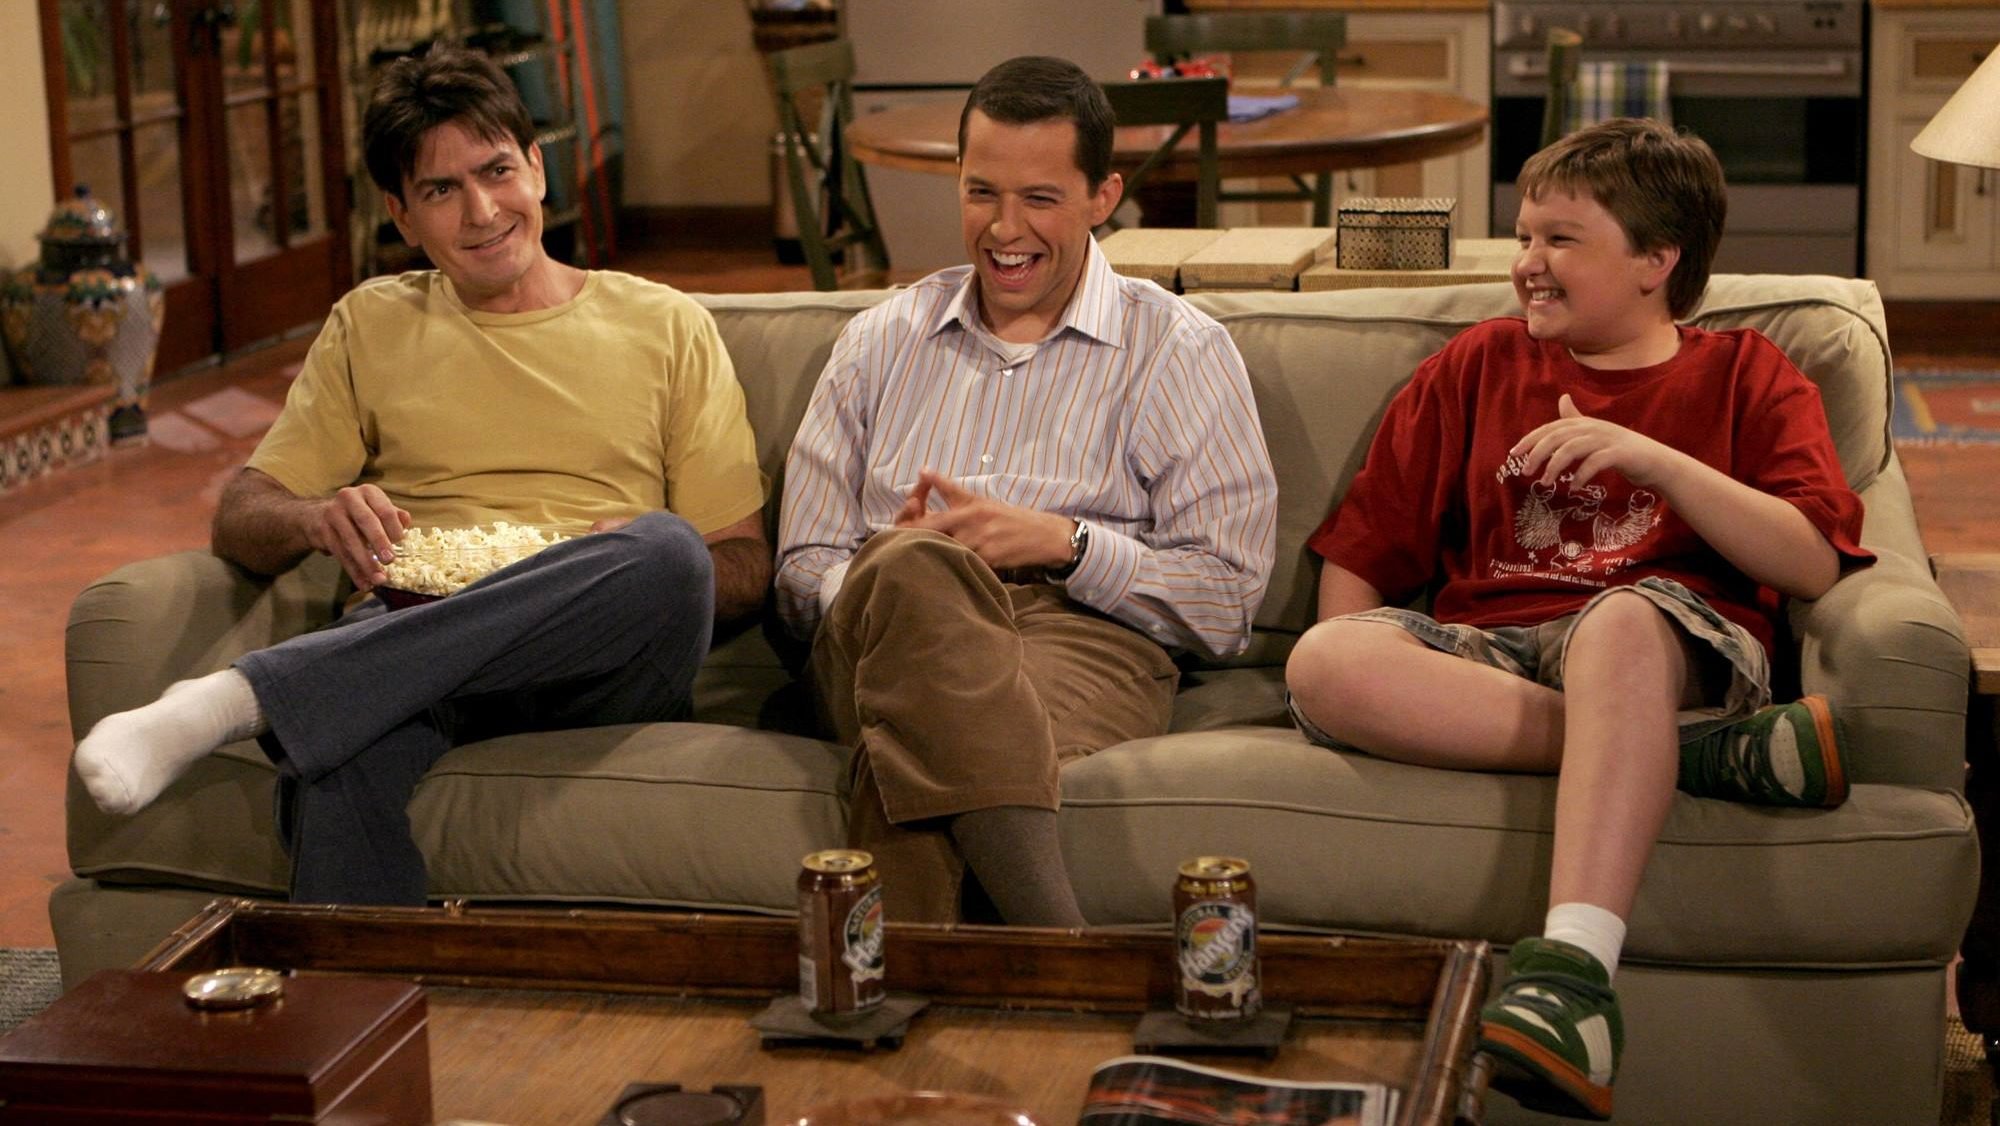 Hassiker der Woche: Two And A Half Men